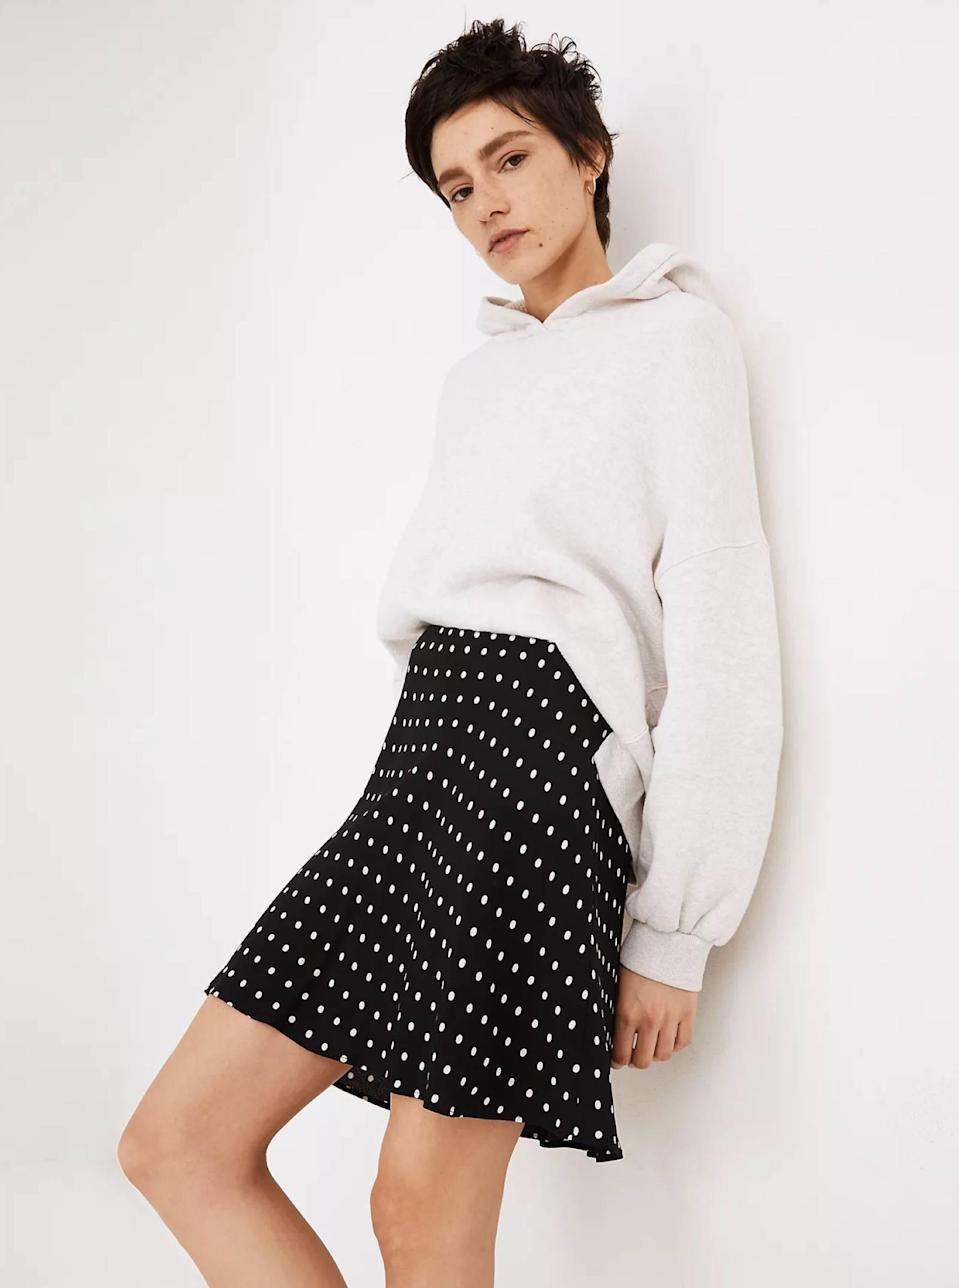 """How adorable is this black-and-white polka dot miniskirt? Pair it with casual staples, like an oversized sweatshirt, as pictured, or a <a href=""""https://www.glamour.com/gallery/the-perfect-white-t-shirt-according-to-glamour-editors?mbid=synd_yahoo_rss"""" rel=""""nofollow noopener"""" target=""""_blank"""" data-ylk=""""slk:plain white tee"""" class=""""link rapid-noclick-resp"""">plain white tee</a>. $79.5, Madewell. <a href=""""https://www.madewell.com/mini-slip-skirt-in-polka-dot-MD219.html?"""" rel=""""nofollow noopener"""" target=""""_blank"""" data-ylk=""""slk:Get it now!"""" class=""""link rapid-noclick-resp"""">Get it now!</a>"""